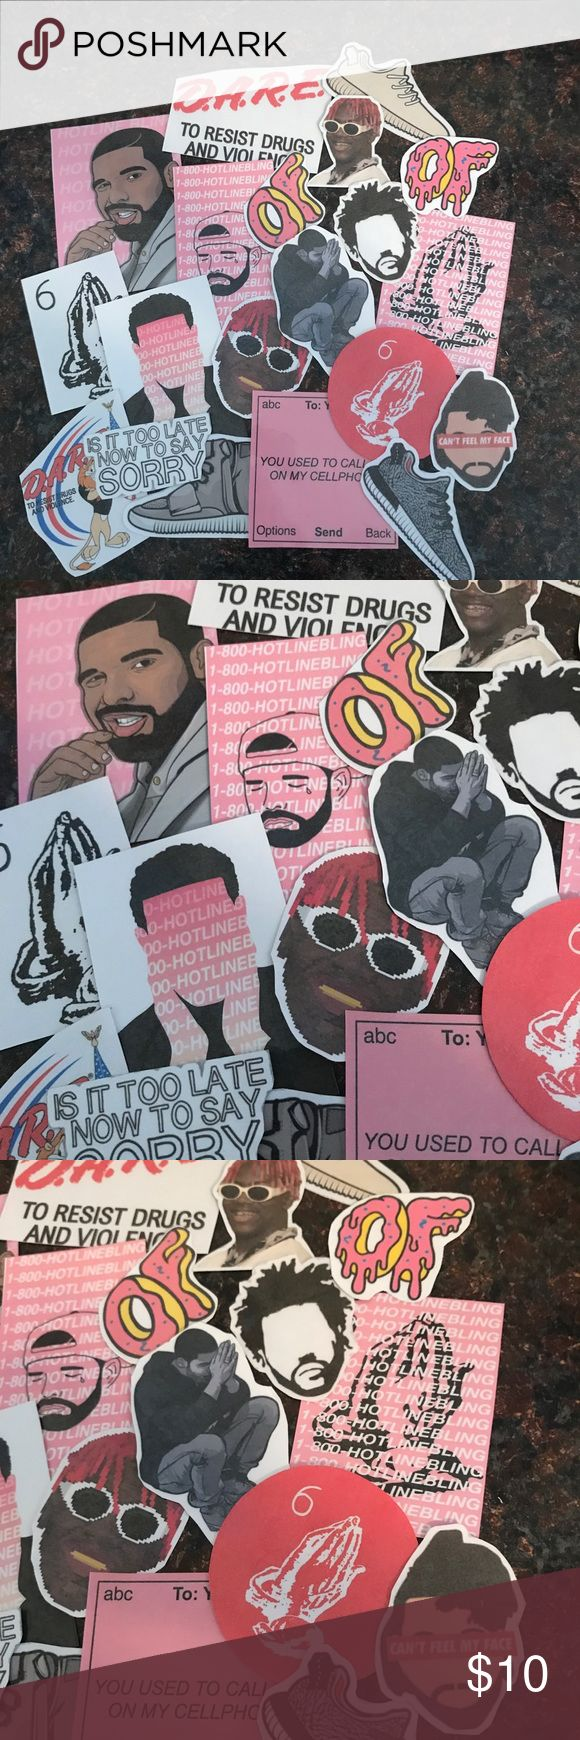 20 piece One time sticker bundle sale! One time hip hop bundle, I'm discontinuing some of my stickers so grab these all at a great price! No swapping or splitting up the bundle, thank you.   Includes: drake, odd future, lil yachty, yeezy boosts, dare, hotline bling, Tyler the creator, The Weeknd etc. you will get all as shown here. Laminated and hand cut with love, minor imperfections may exist. Laminated for some extra protection, not waterproof, stick well. Accessories